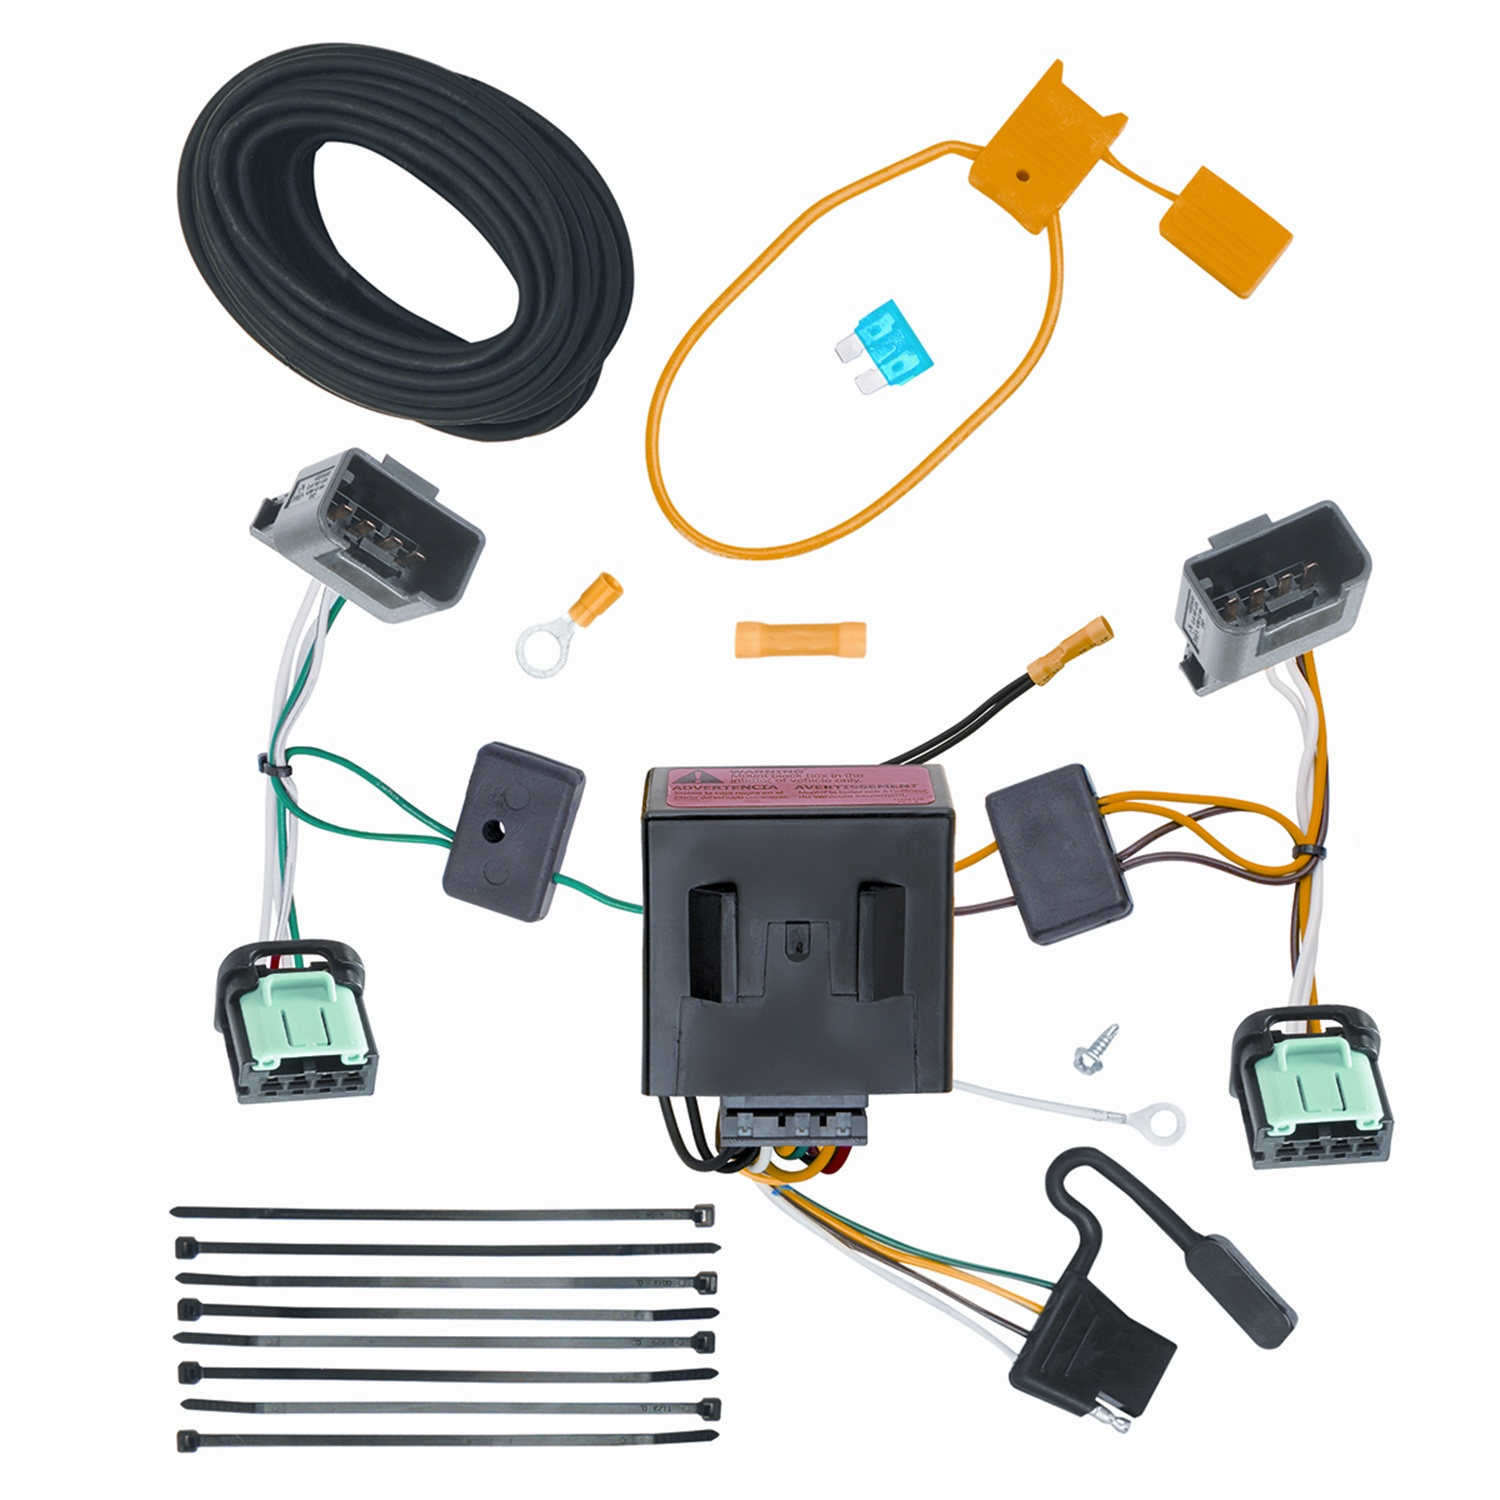 Vehicle To Trailer Wiring Harness Connector 118531 For 05-10 VW Jetta 4-Dr  Sedan - Walmart.com